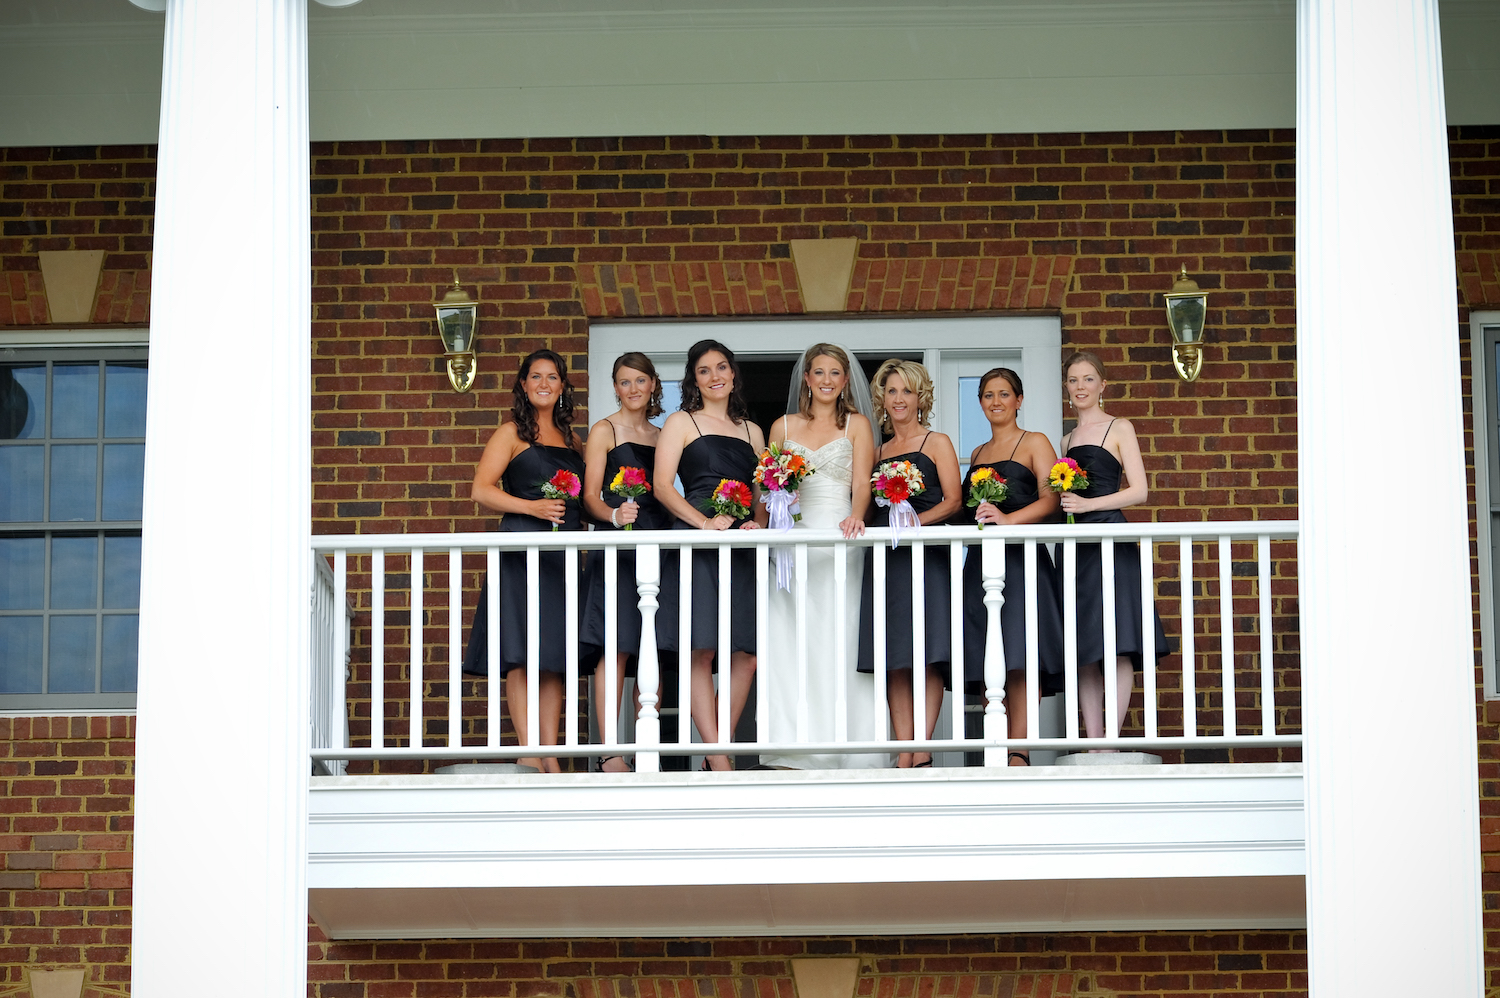 front-rose-hill-bridal-party-on-balcony.jpg